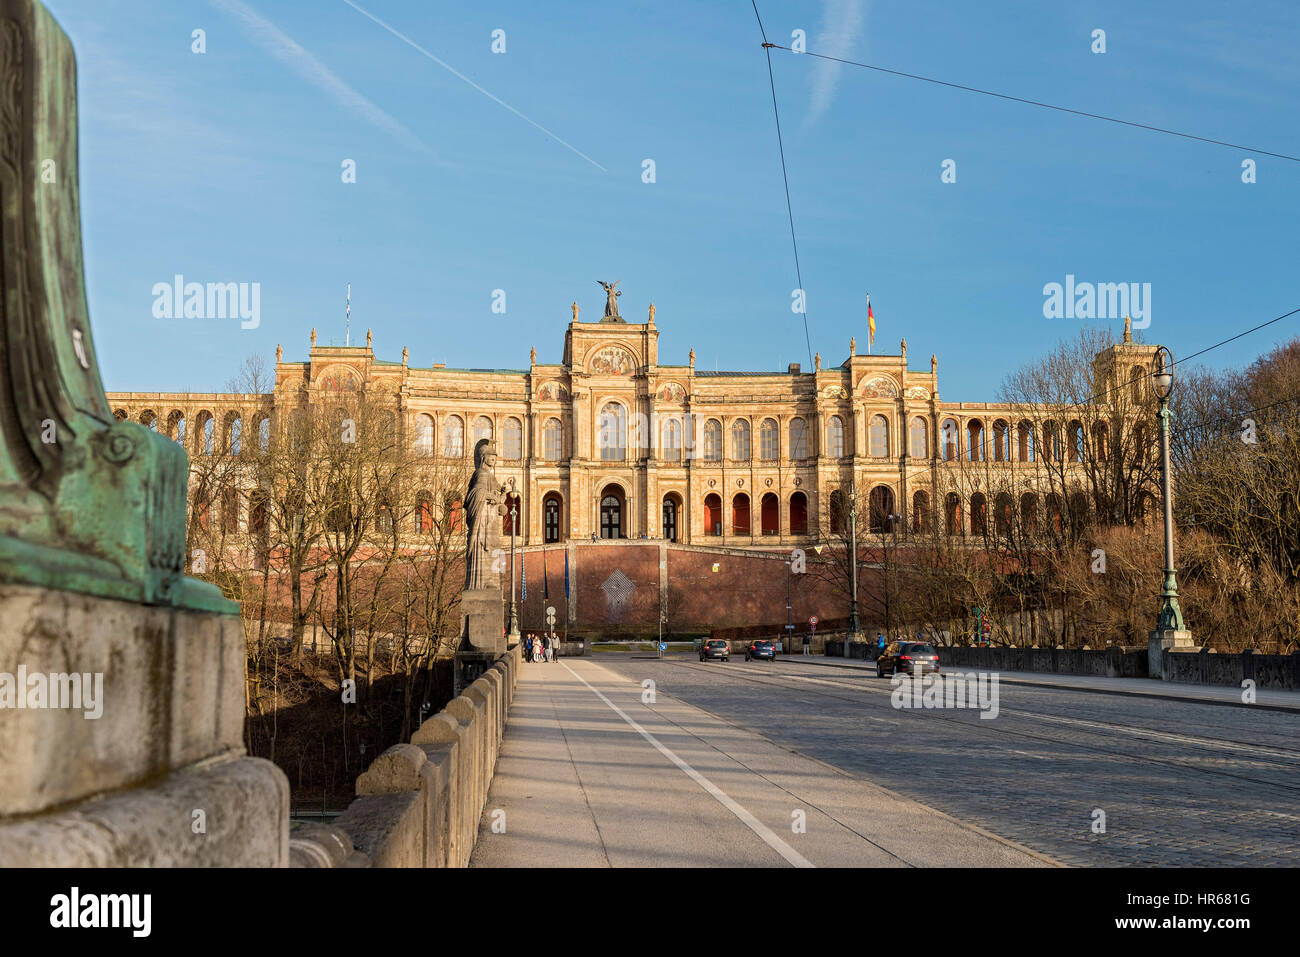 Maximilianeum, Bavarian Parliament in Munich, bavaria, germany - Stock Image